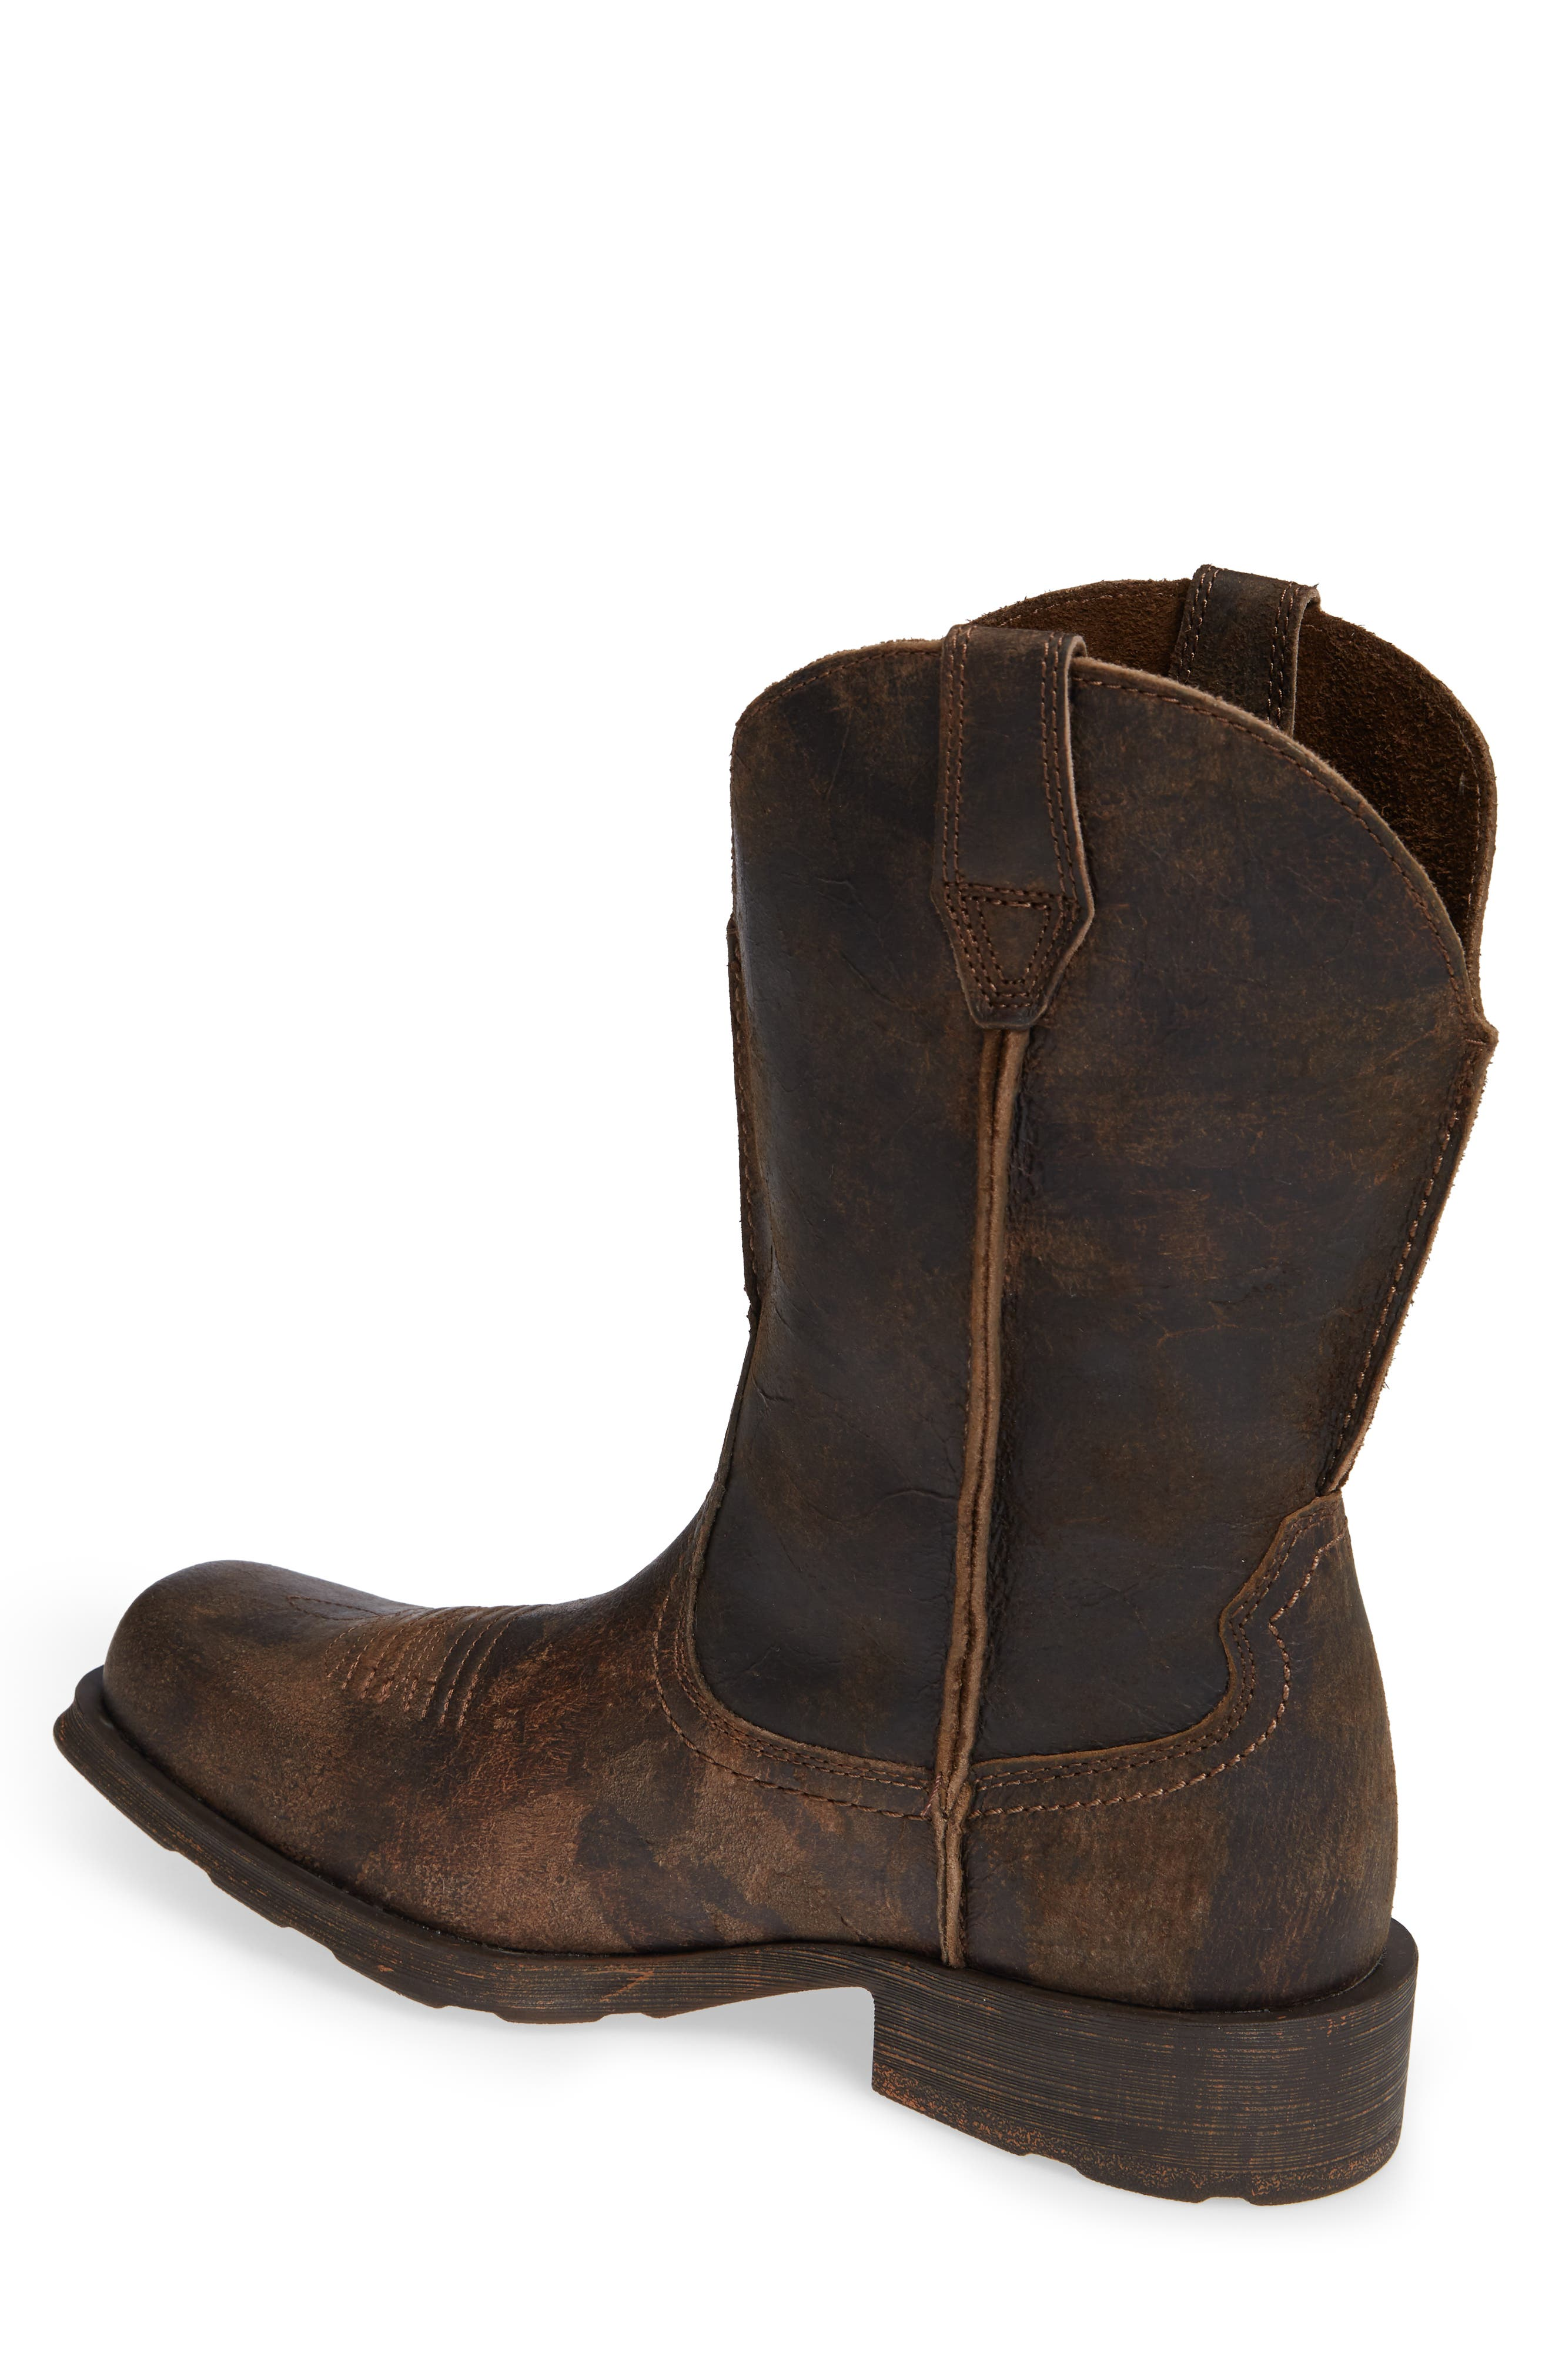 ARIAT, Rambler Boot, Alternate thumbnail 2, color, ANTIQUE GREY LEATHER